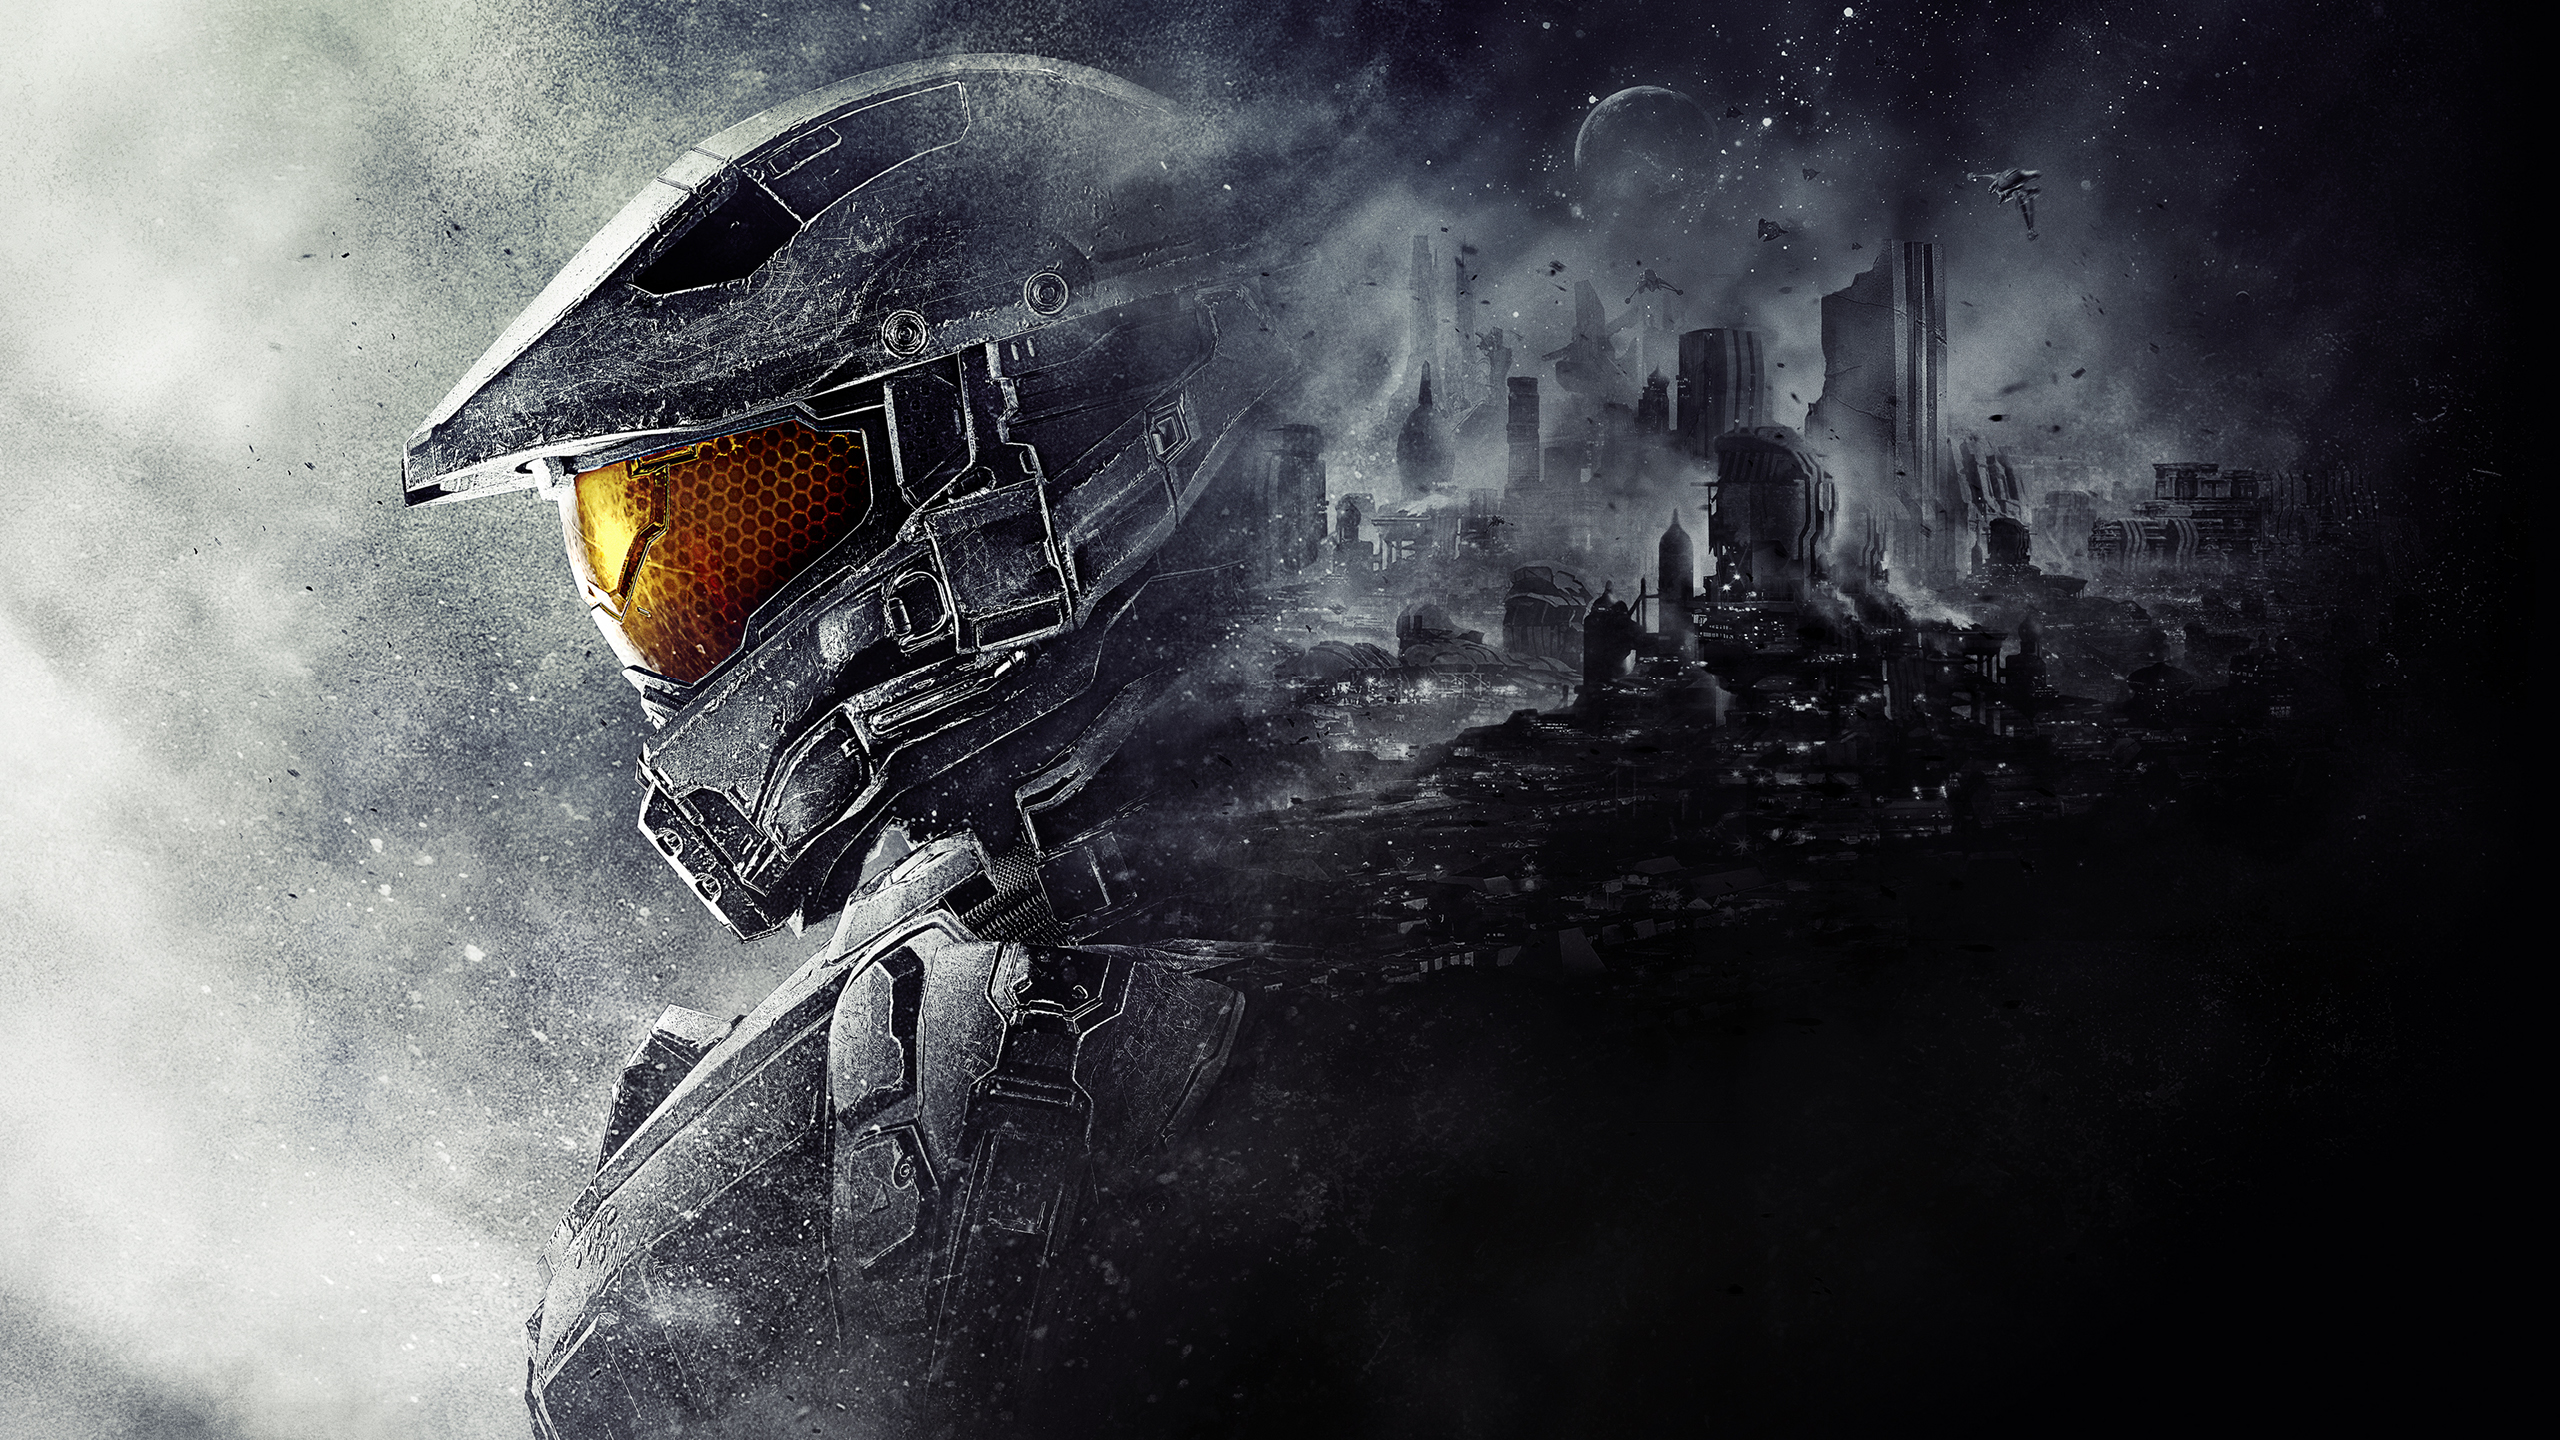 Master Chief Halo 5 Guardians Wallpapers HD Wallpapers 2560x1440